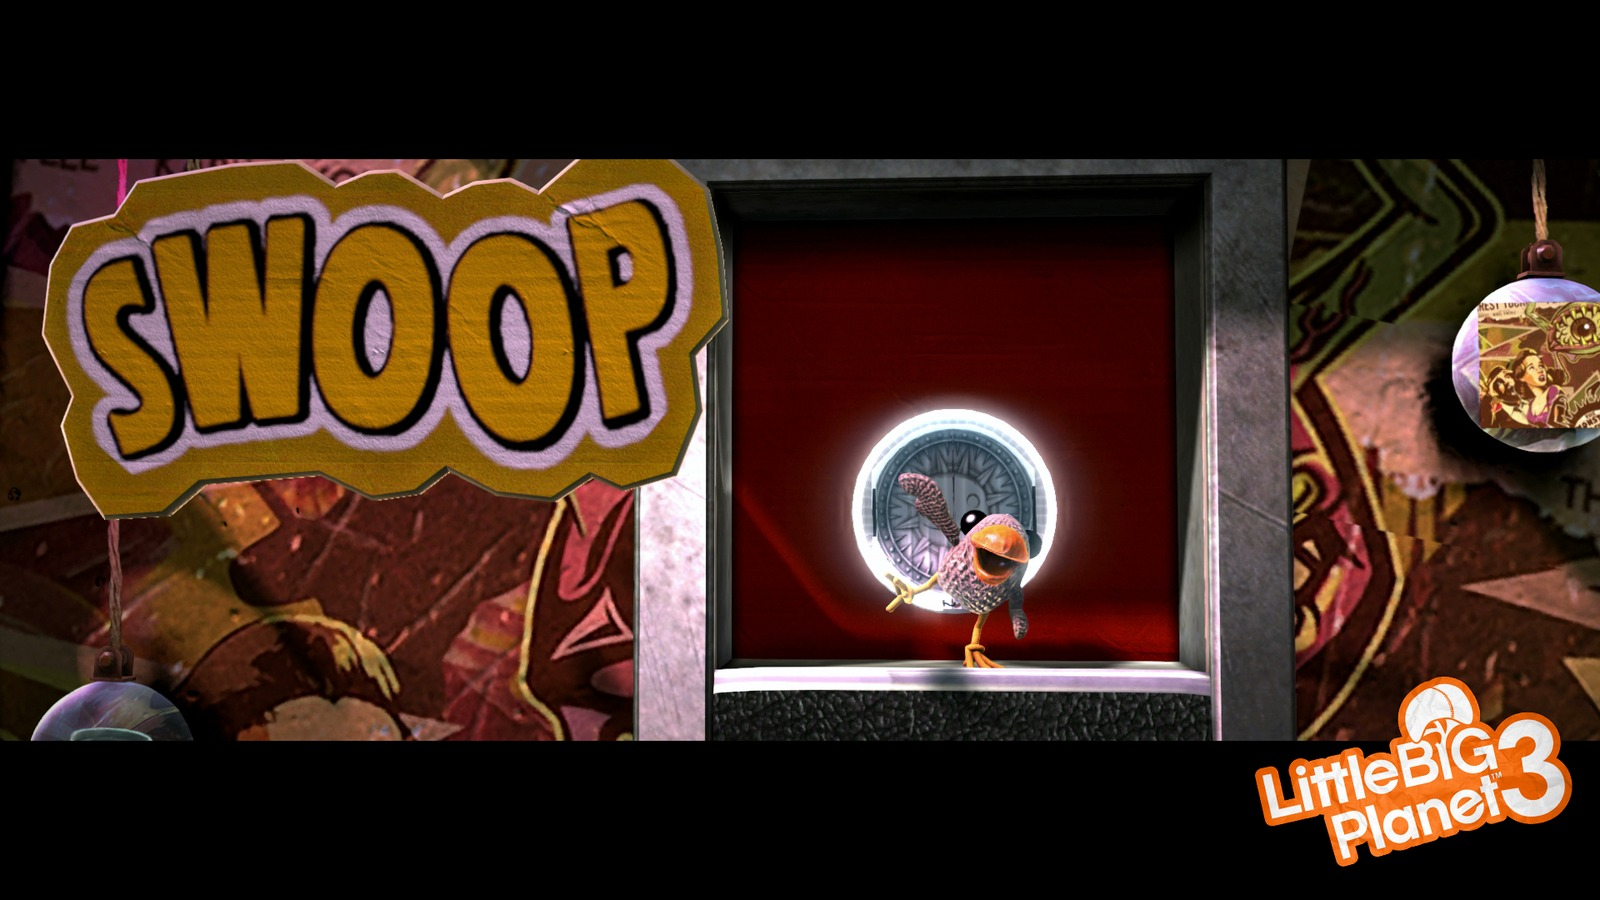 Littlebigplanet 3 Ps4 On Sale Now At Mighty Ape Nz Little Big Planet For Image